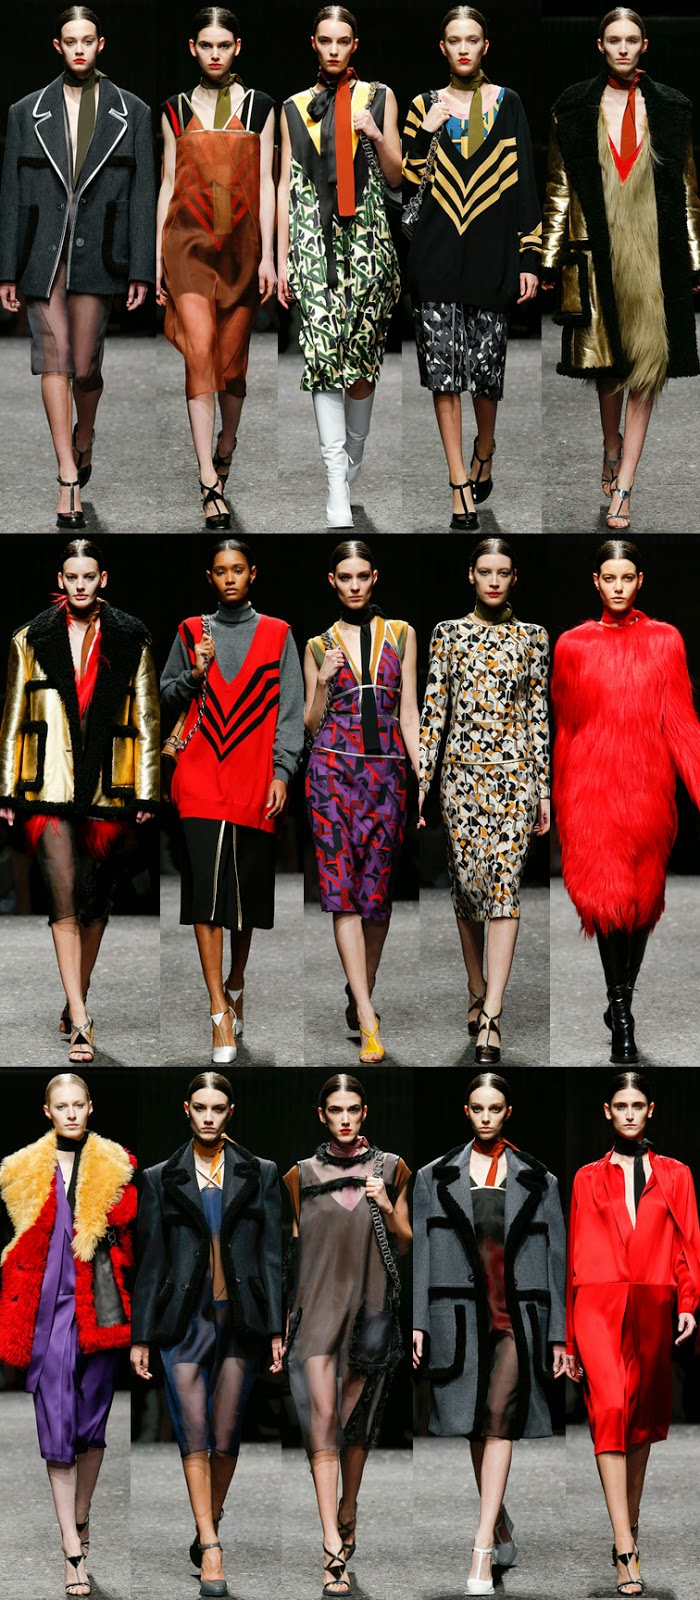 Prada fall winter 2014 runway collection, FW14, AW14, MFW, Milan fashion week, Miuccia Prada